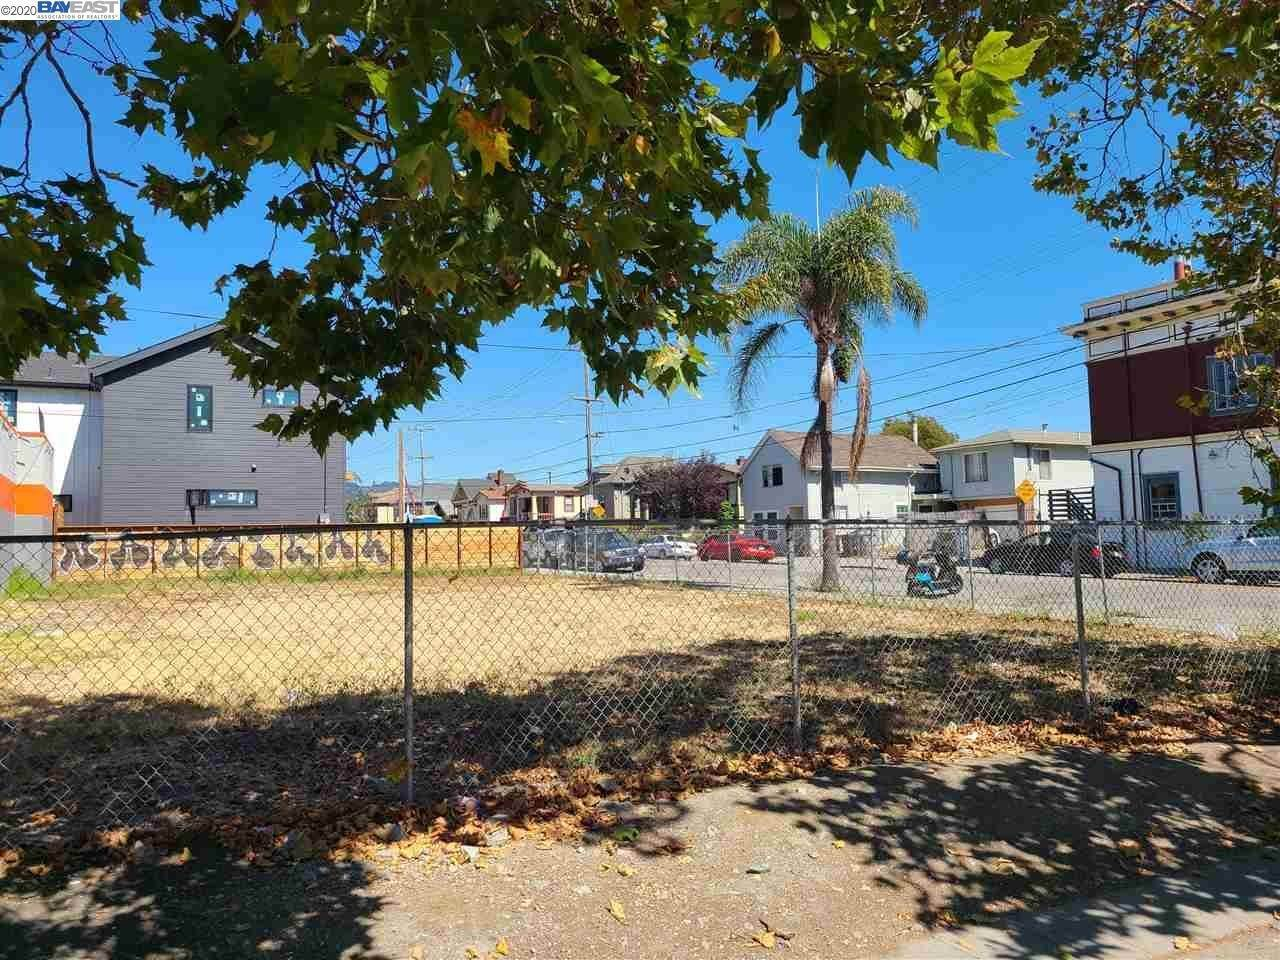 Property for Sale at 6500 San Pablo Avenue Oakland, California 94608 United States